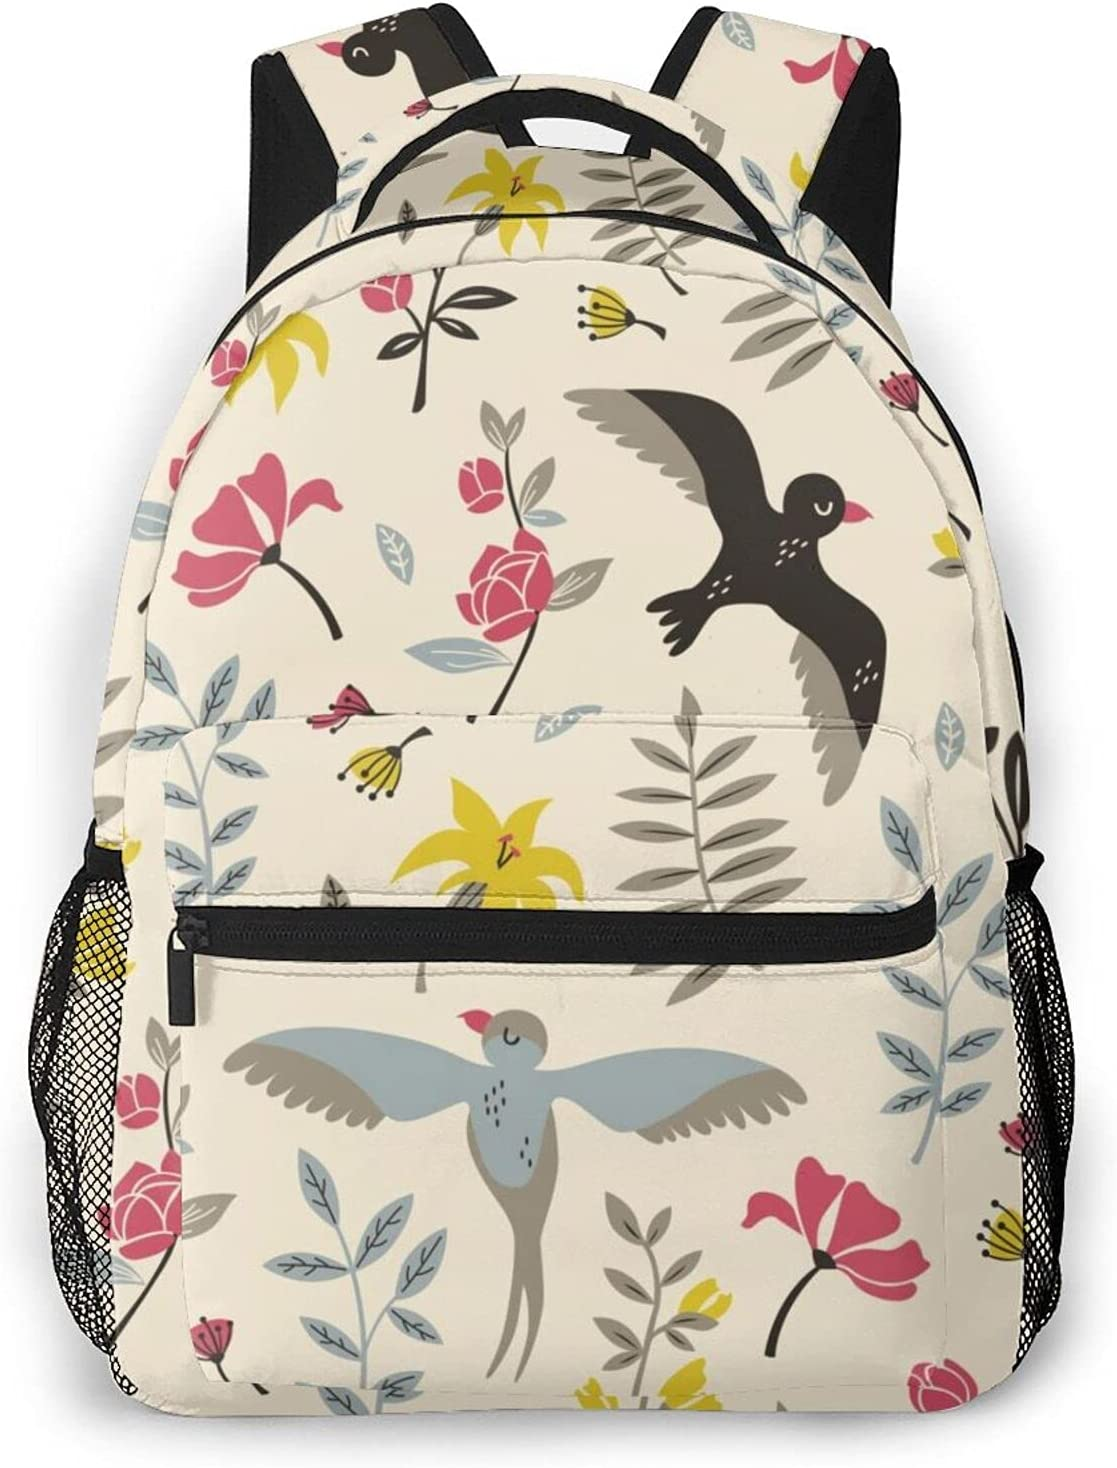 Lightweight unisex Water Super special price Resistant Fashion Prints Backpacks Teen Gi For